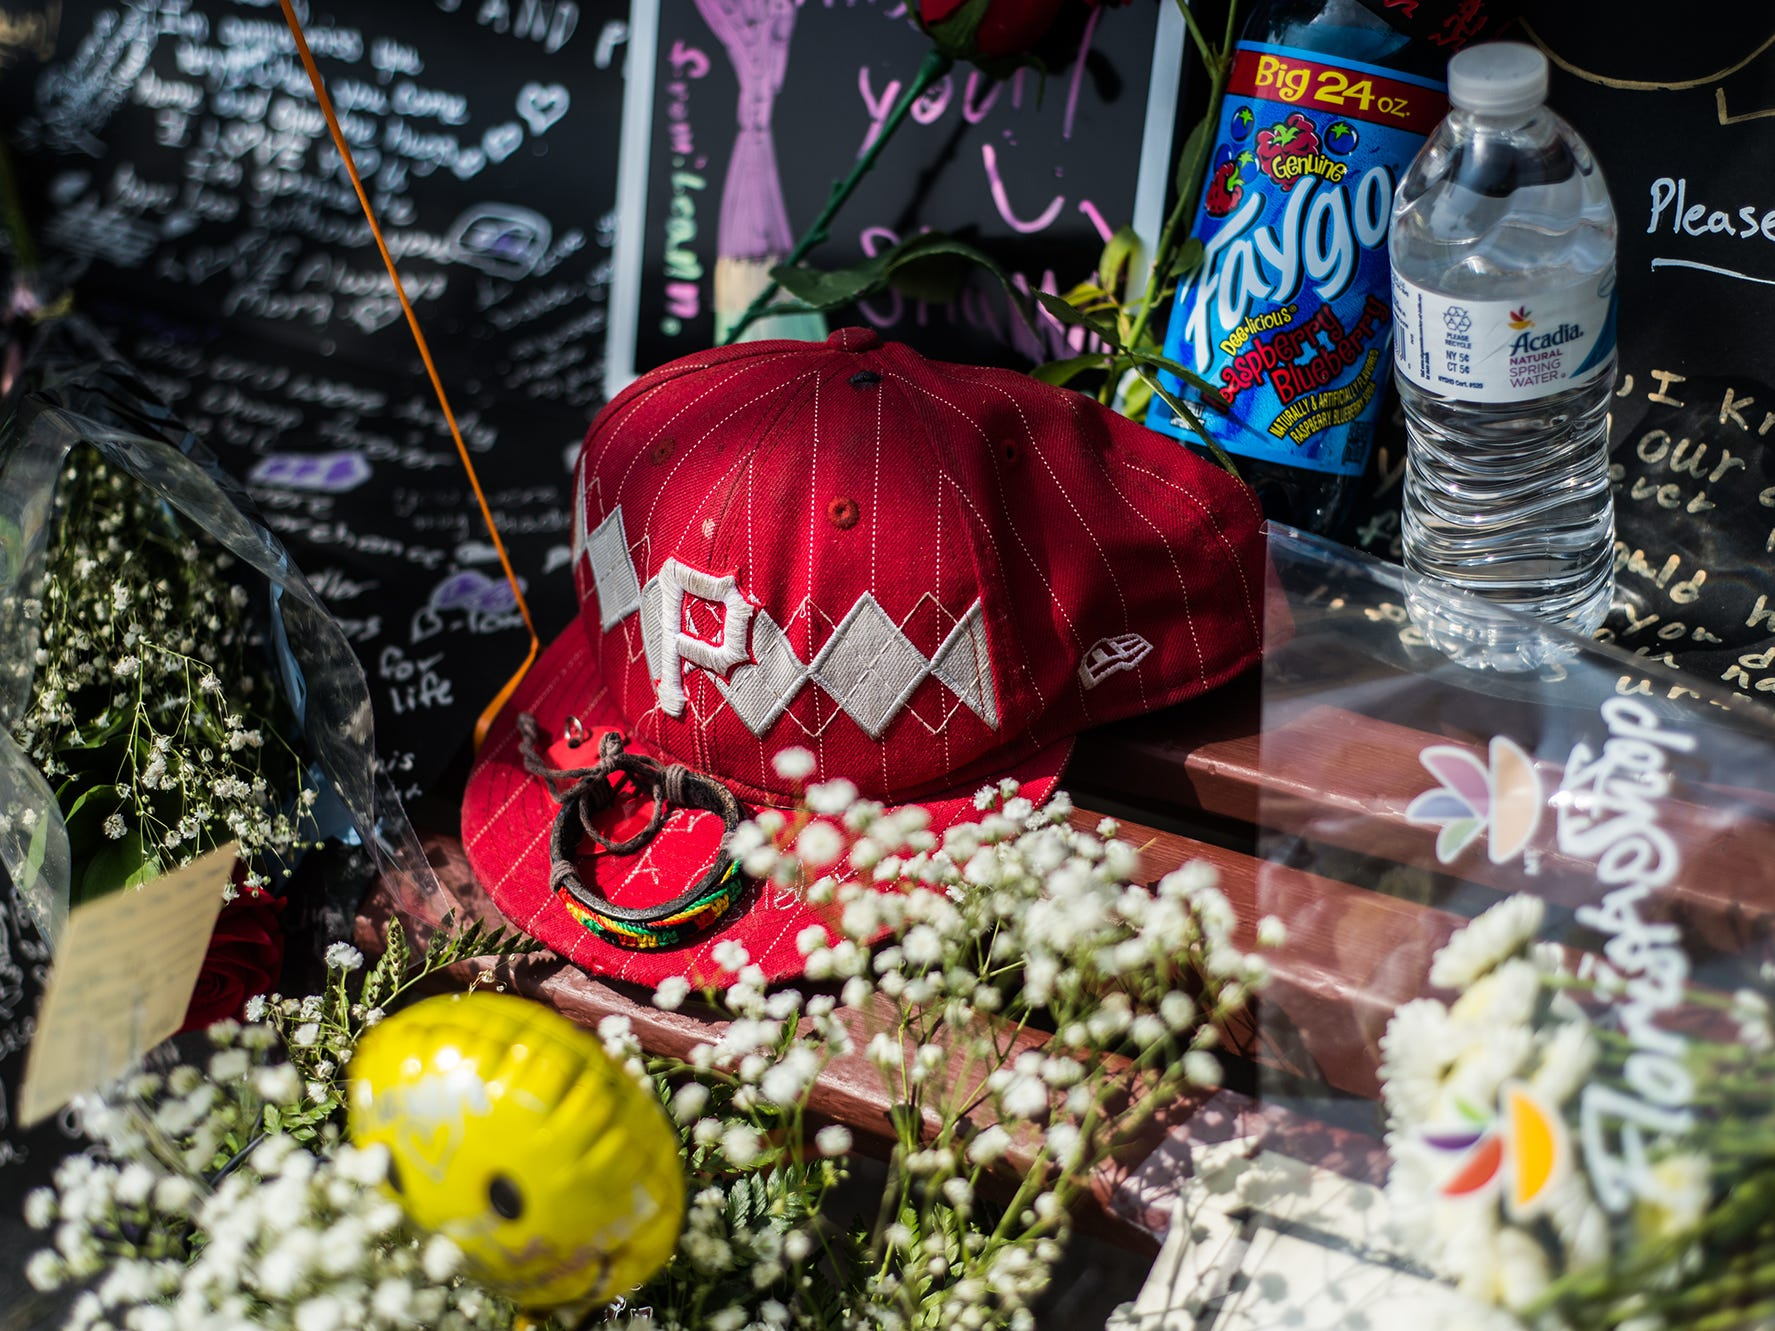 A Pittsburgh Pirates cap sits among the flowers, messages and other gifts left for Shawn Jarvis, a Hanover man who was killed the night of June 27, 2014 in the town's Center Square.